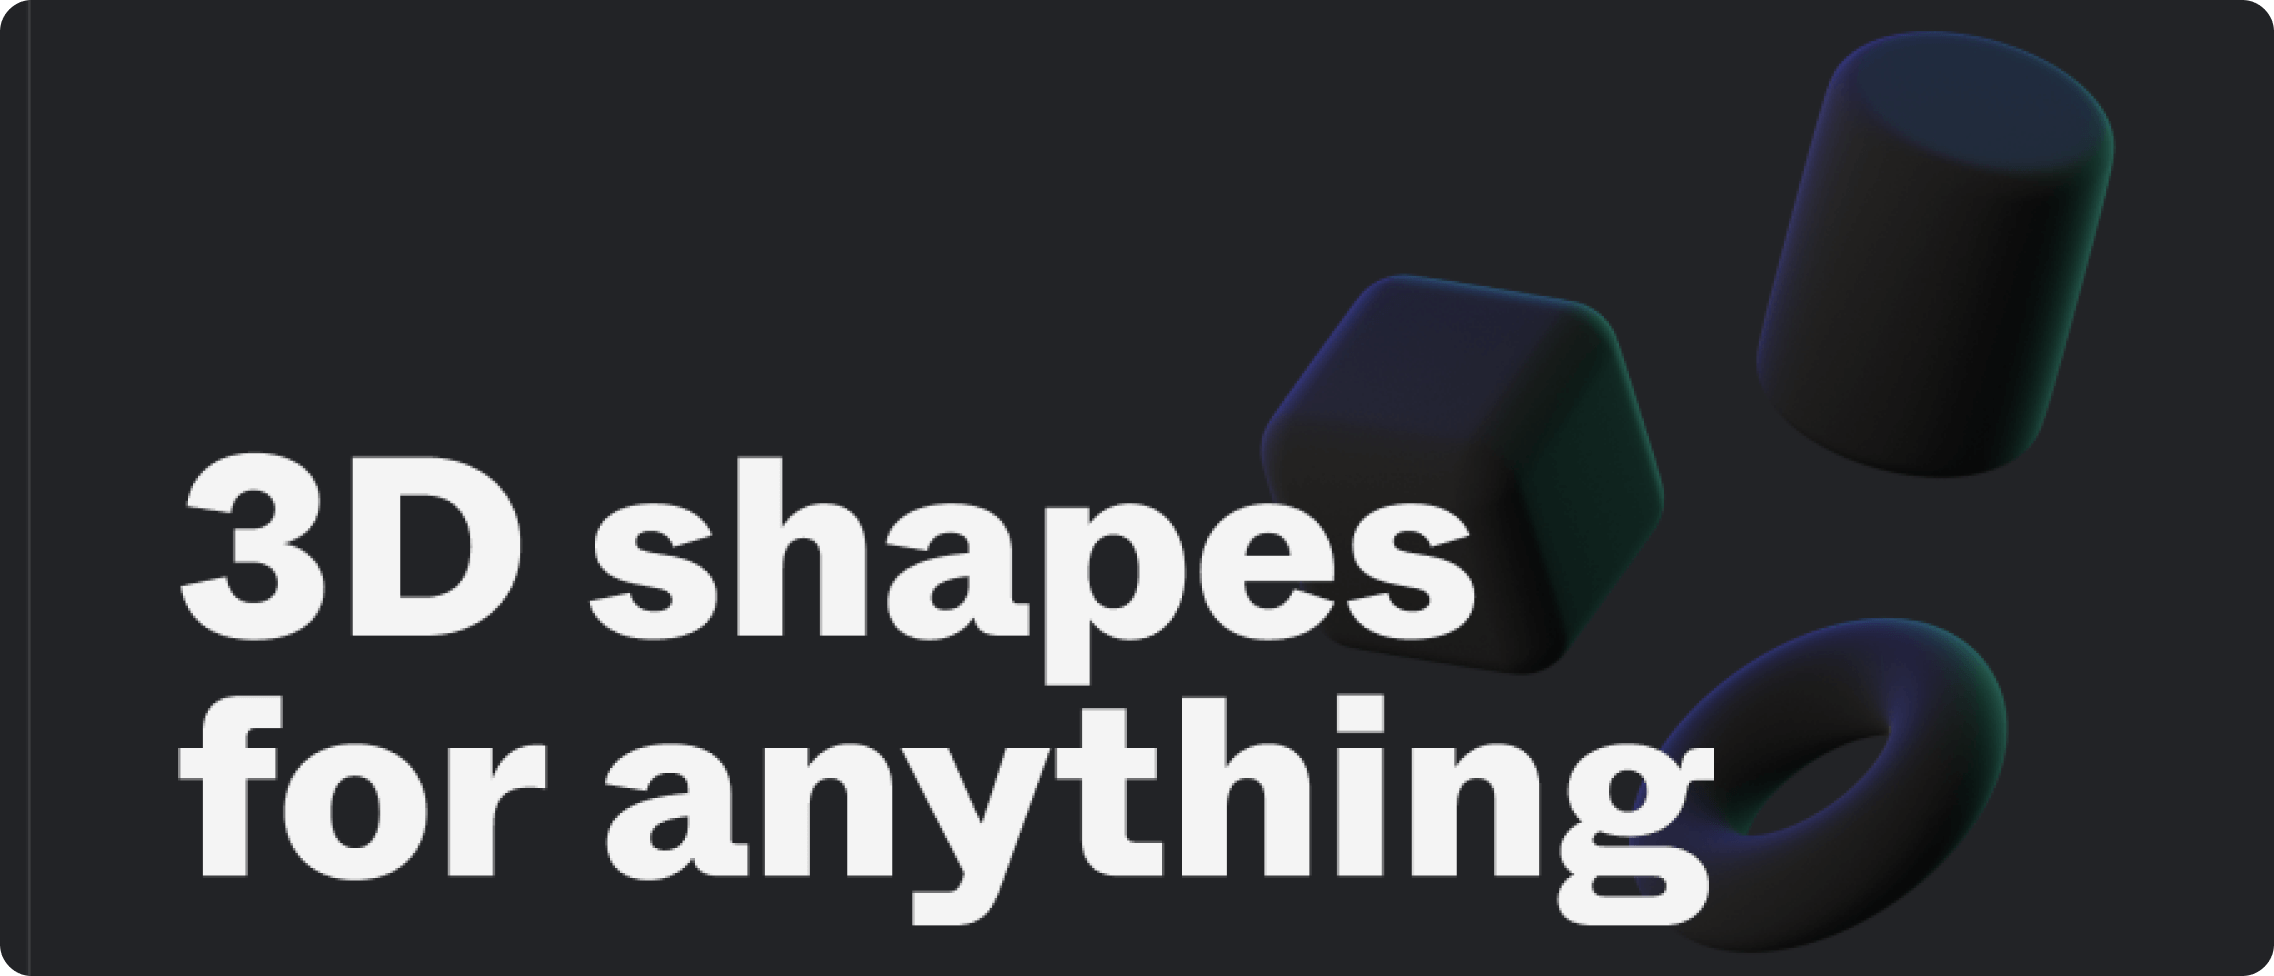 3D shapes for anything text.